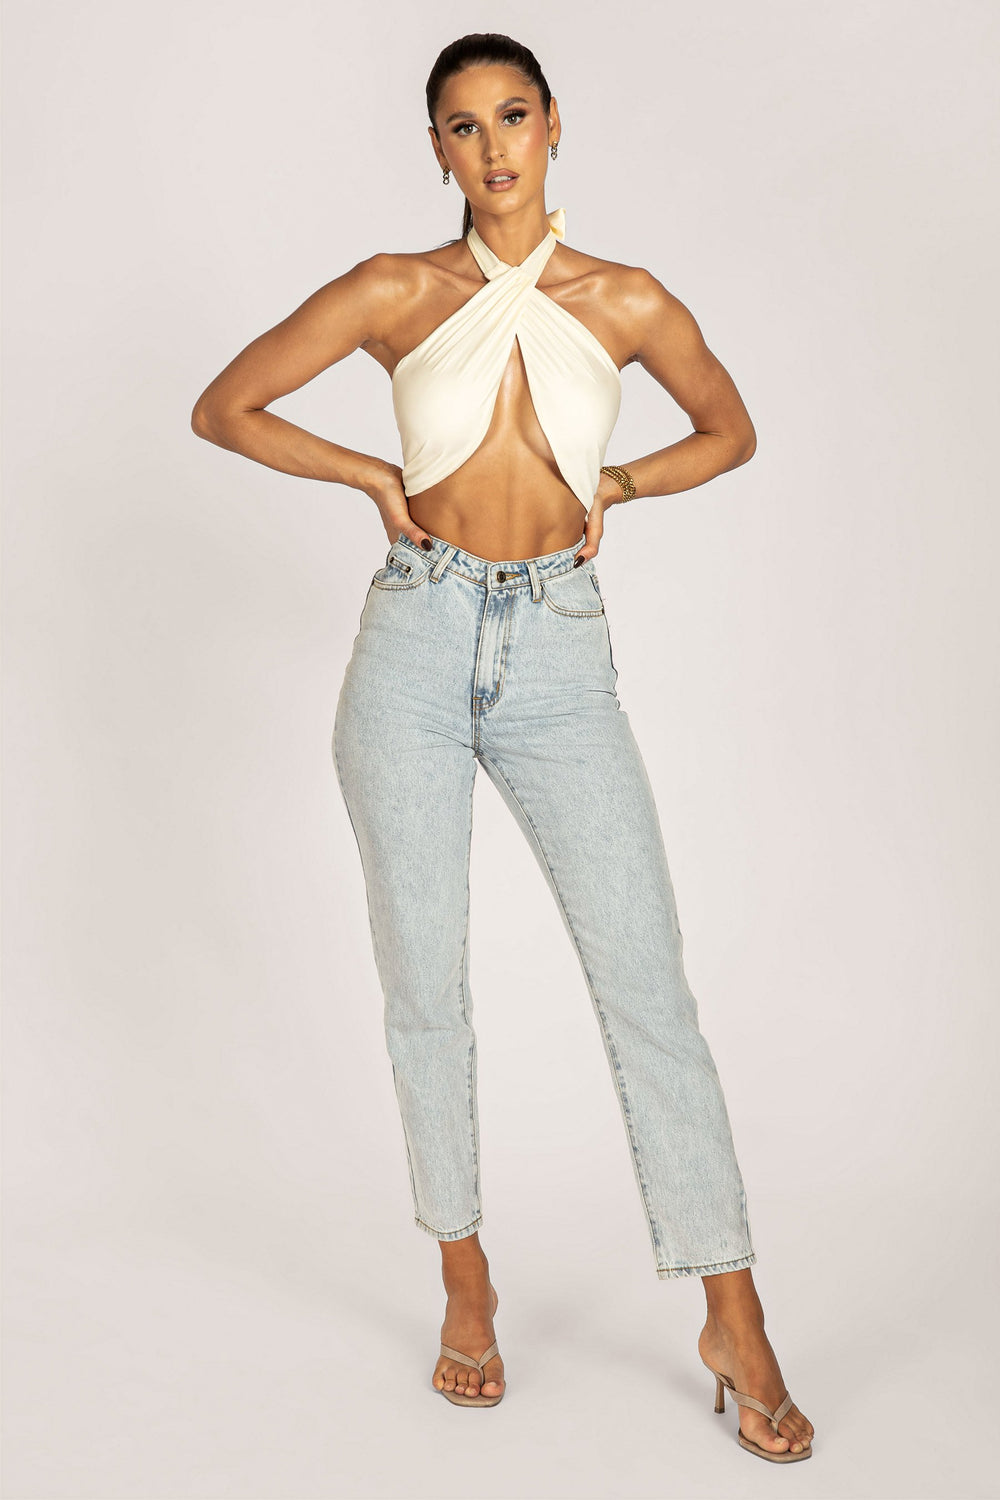 Ines Wrap Halter Neck Crop Top - Cream